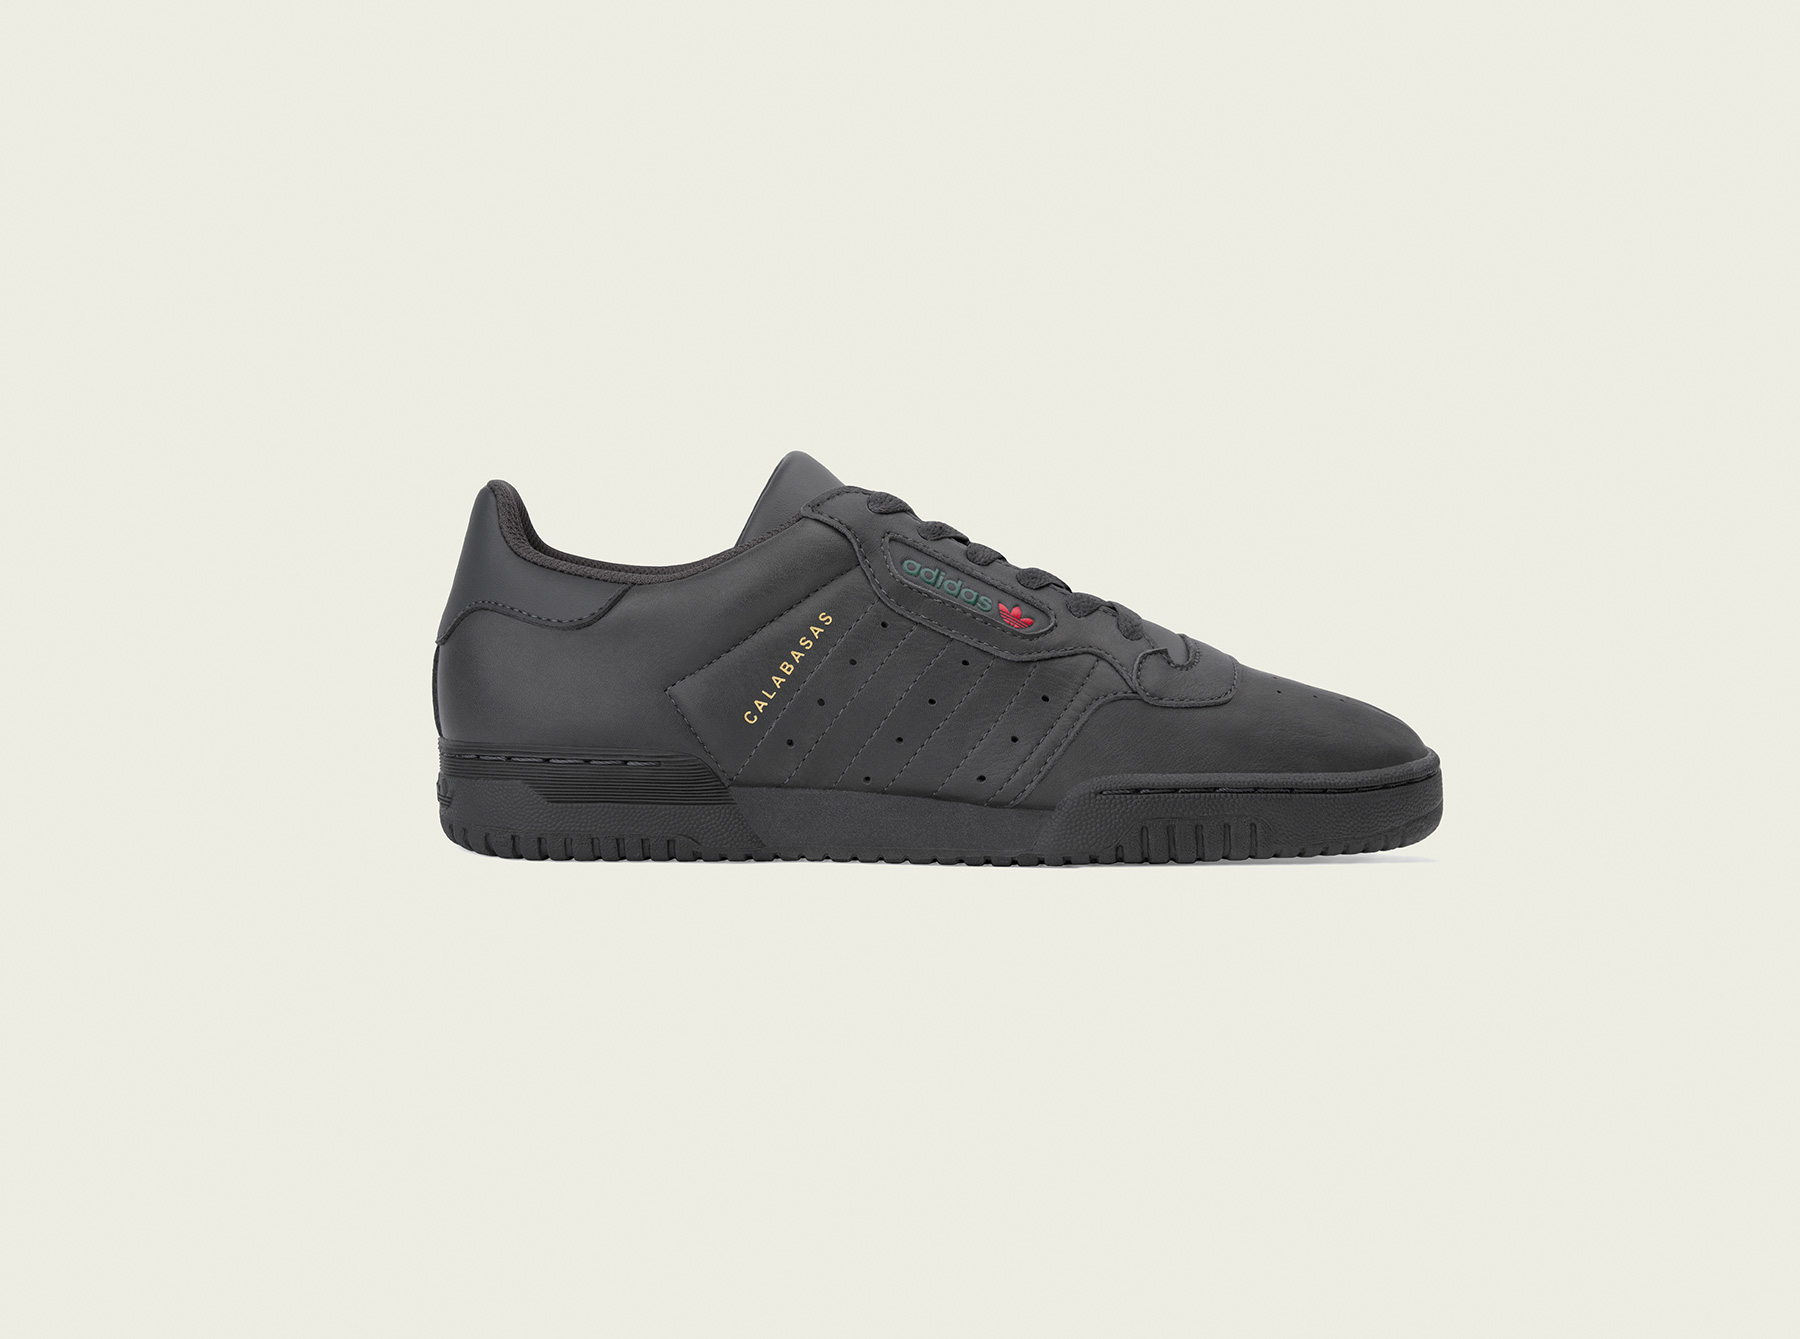 CG6420 adidas YEEZY POWERPHASE Black 2